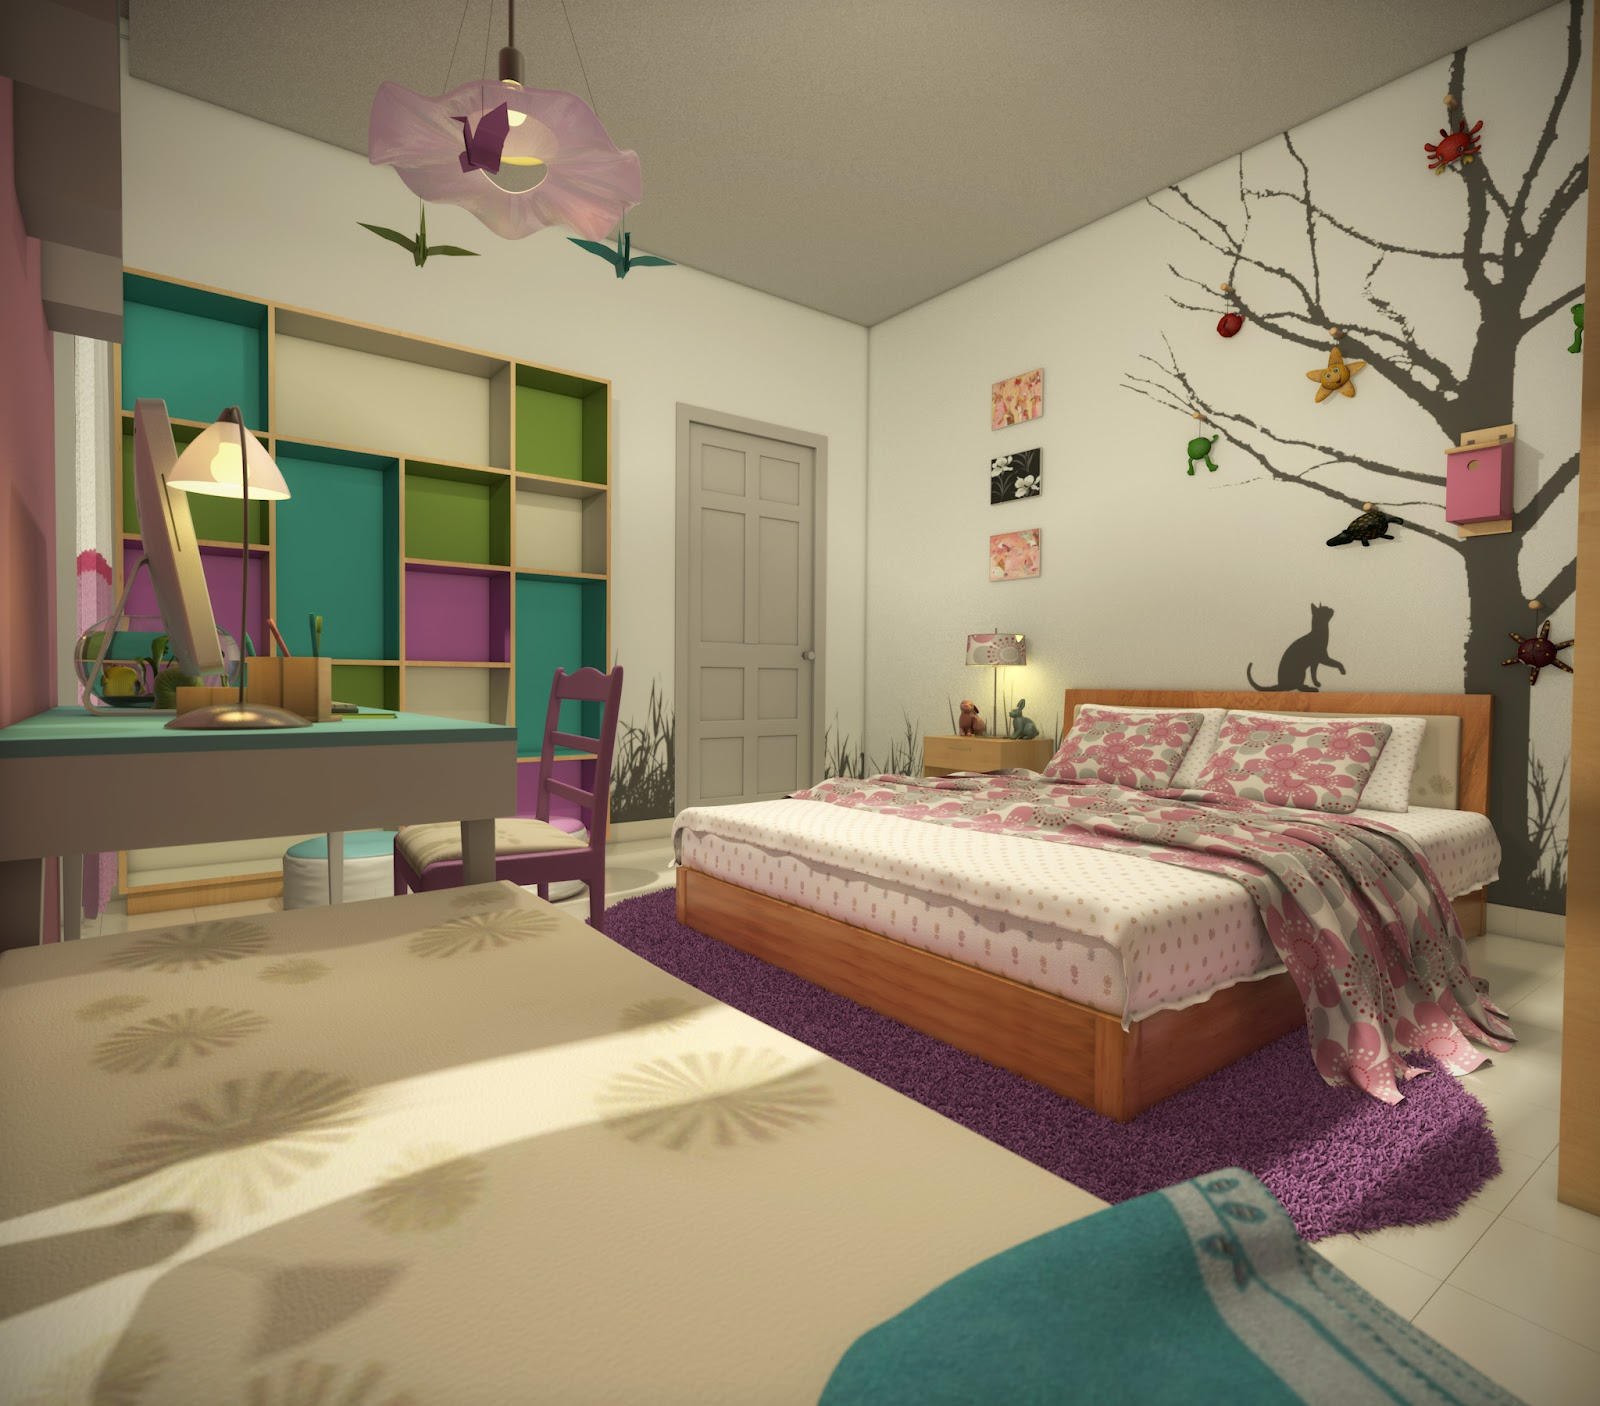 Top 28 12 year rooms how can i decorate this boring for 12 year old bedroom ideas girl